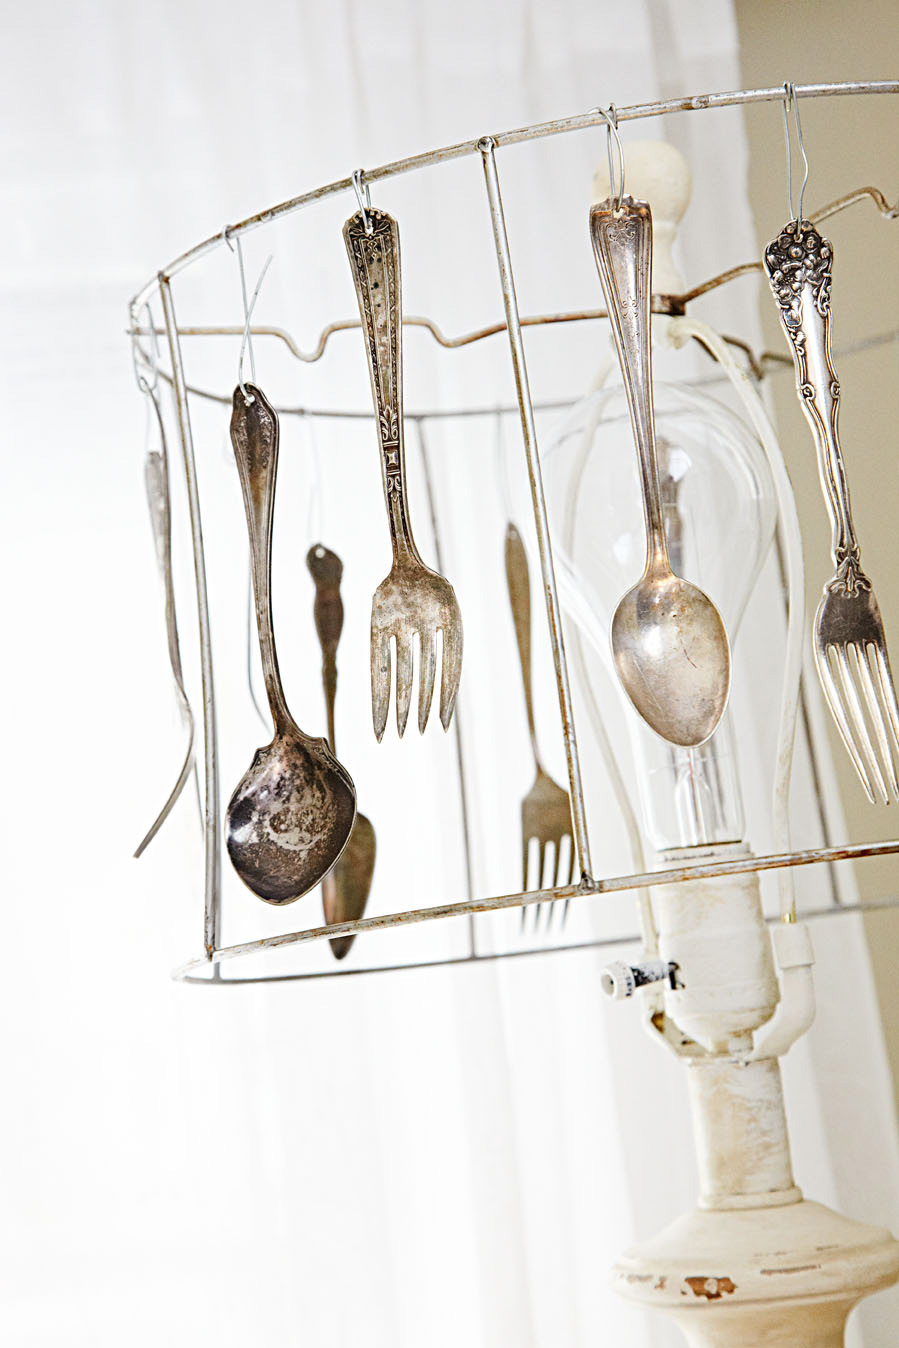 Repurposed silverware